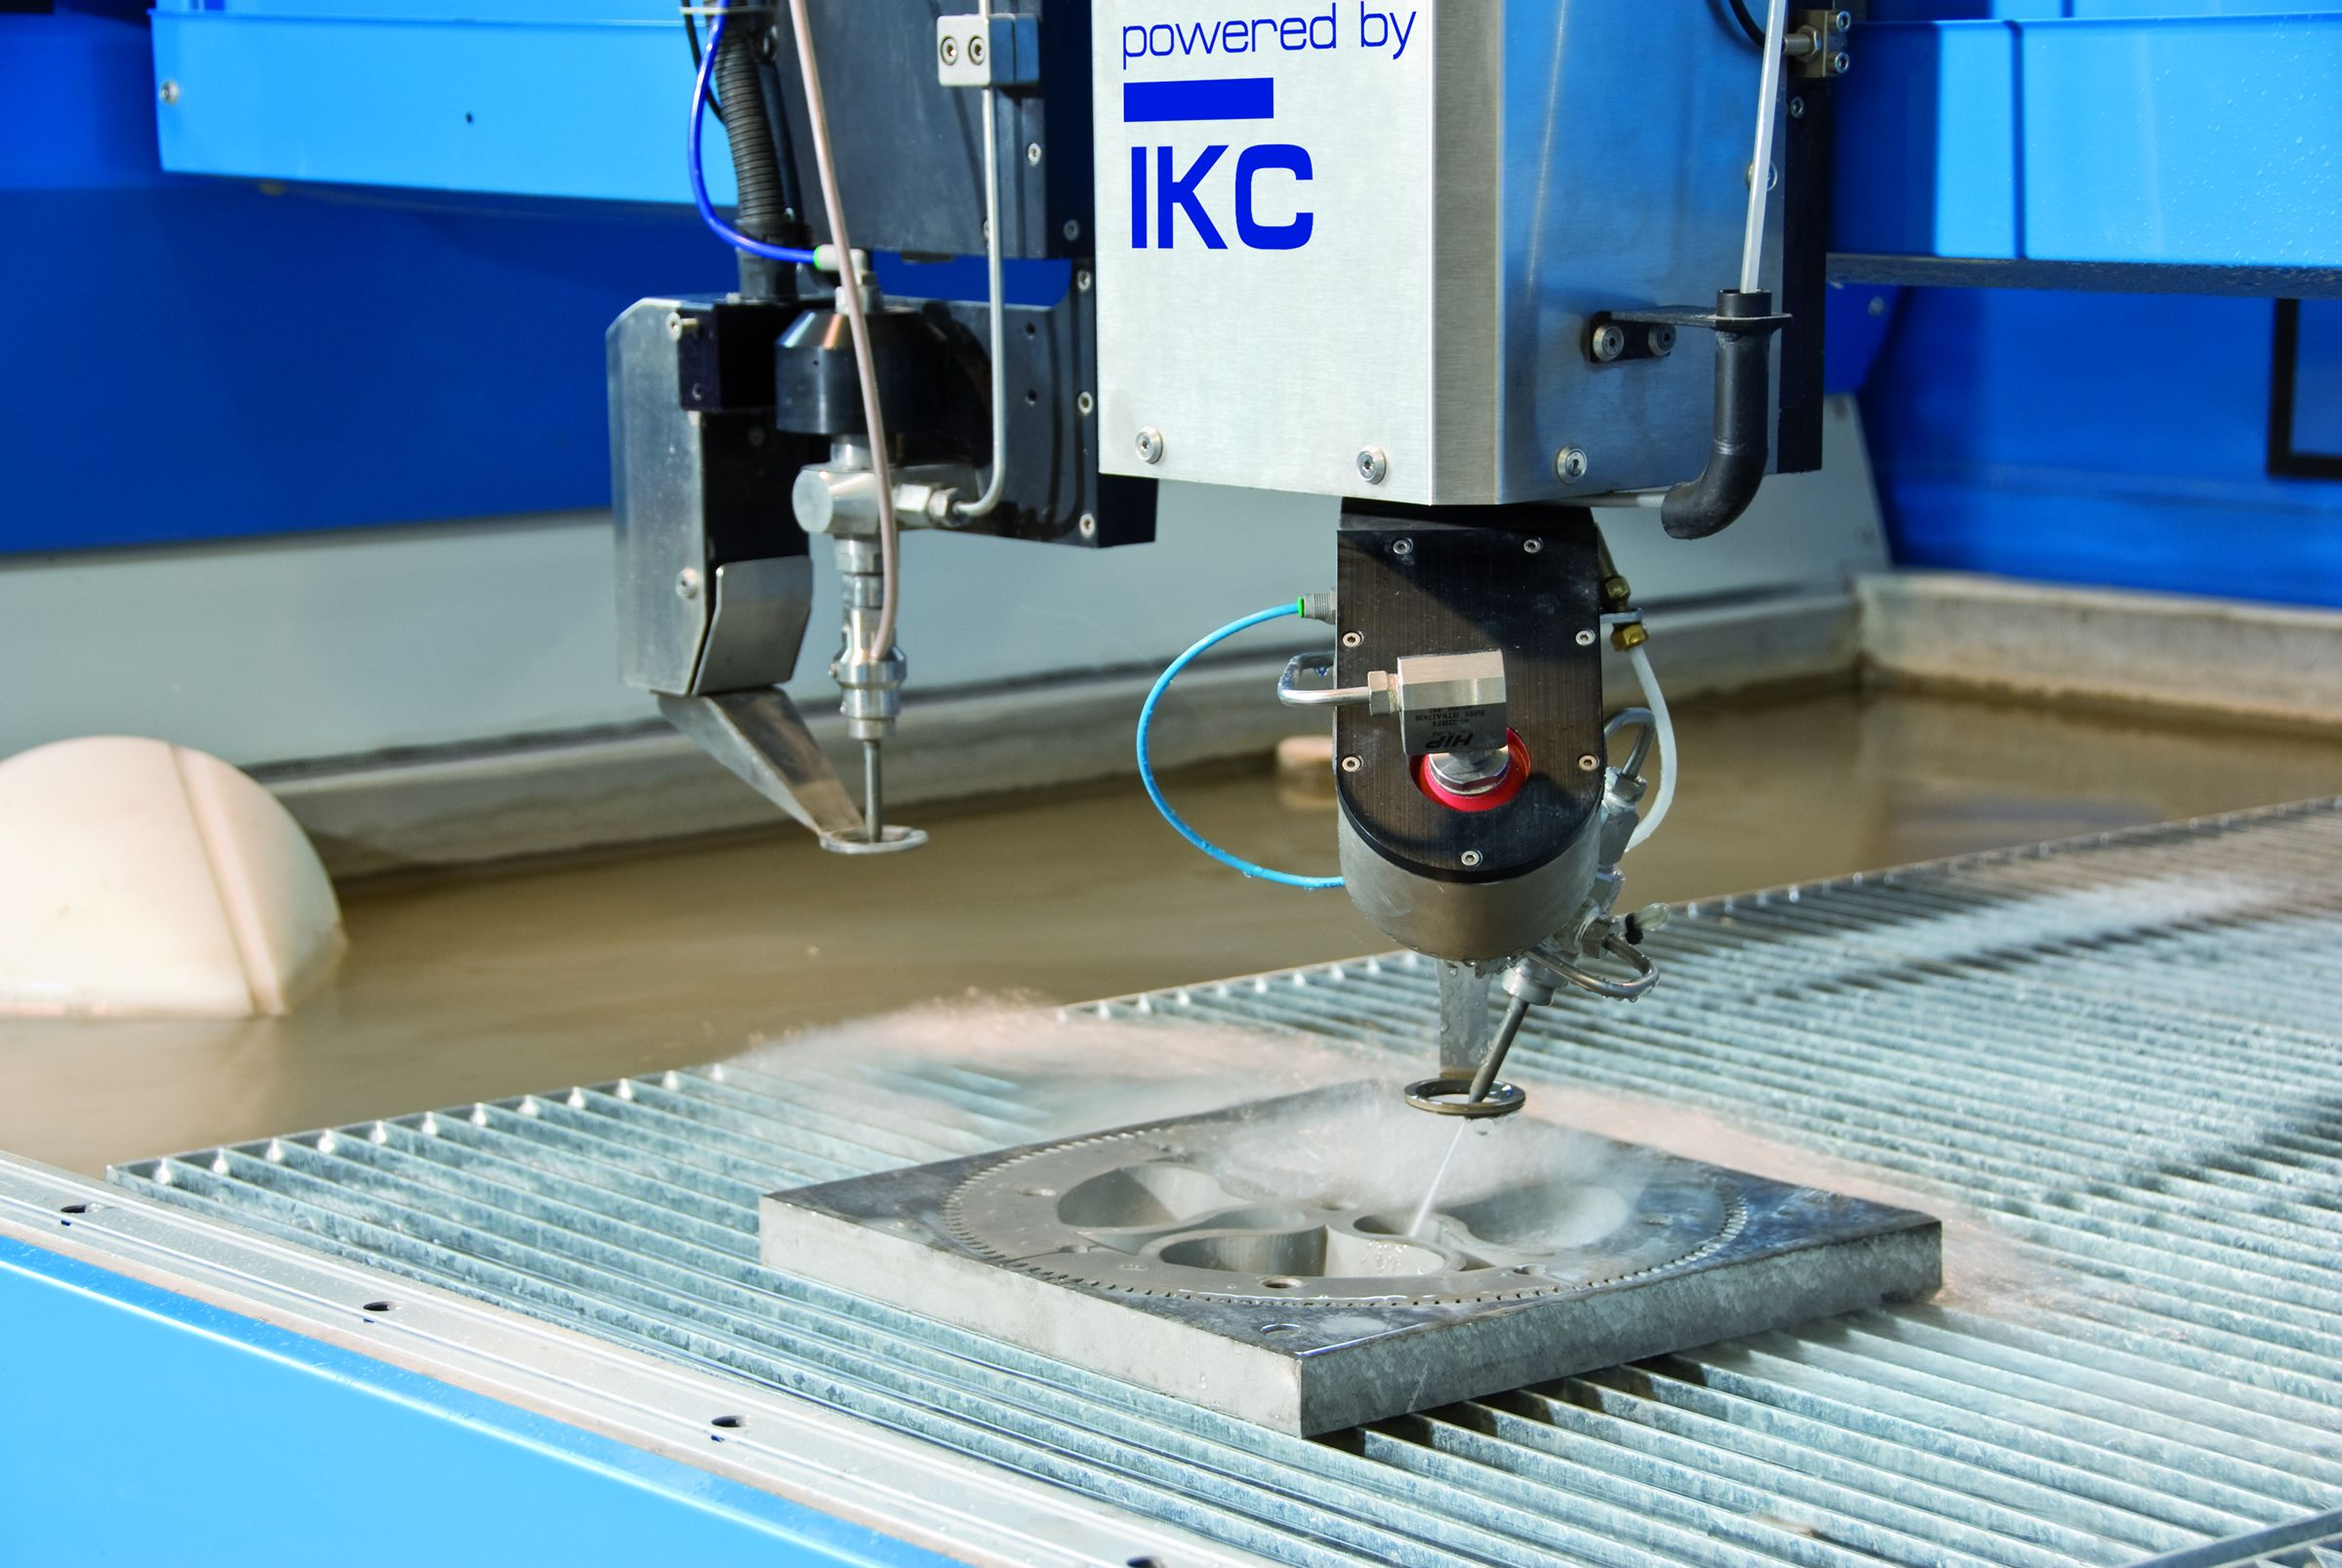 a water jet cutter, uses high pressure water to cut | CNC in